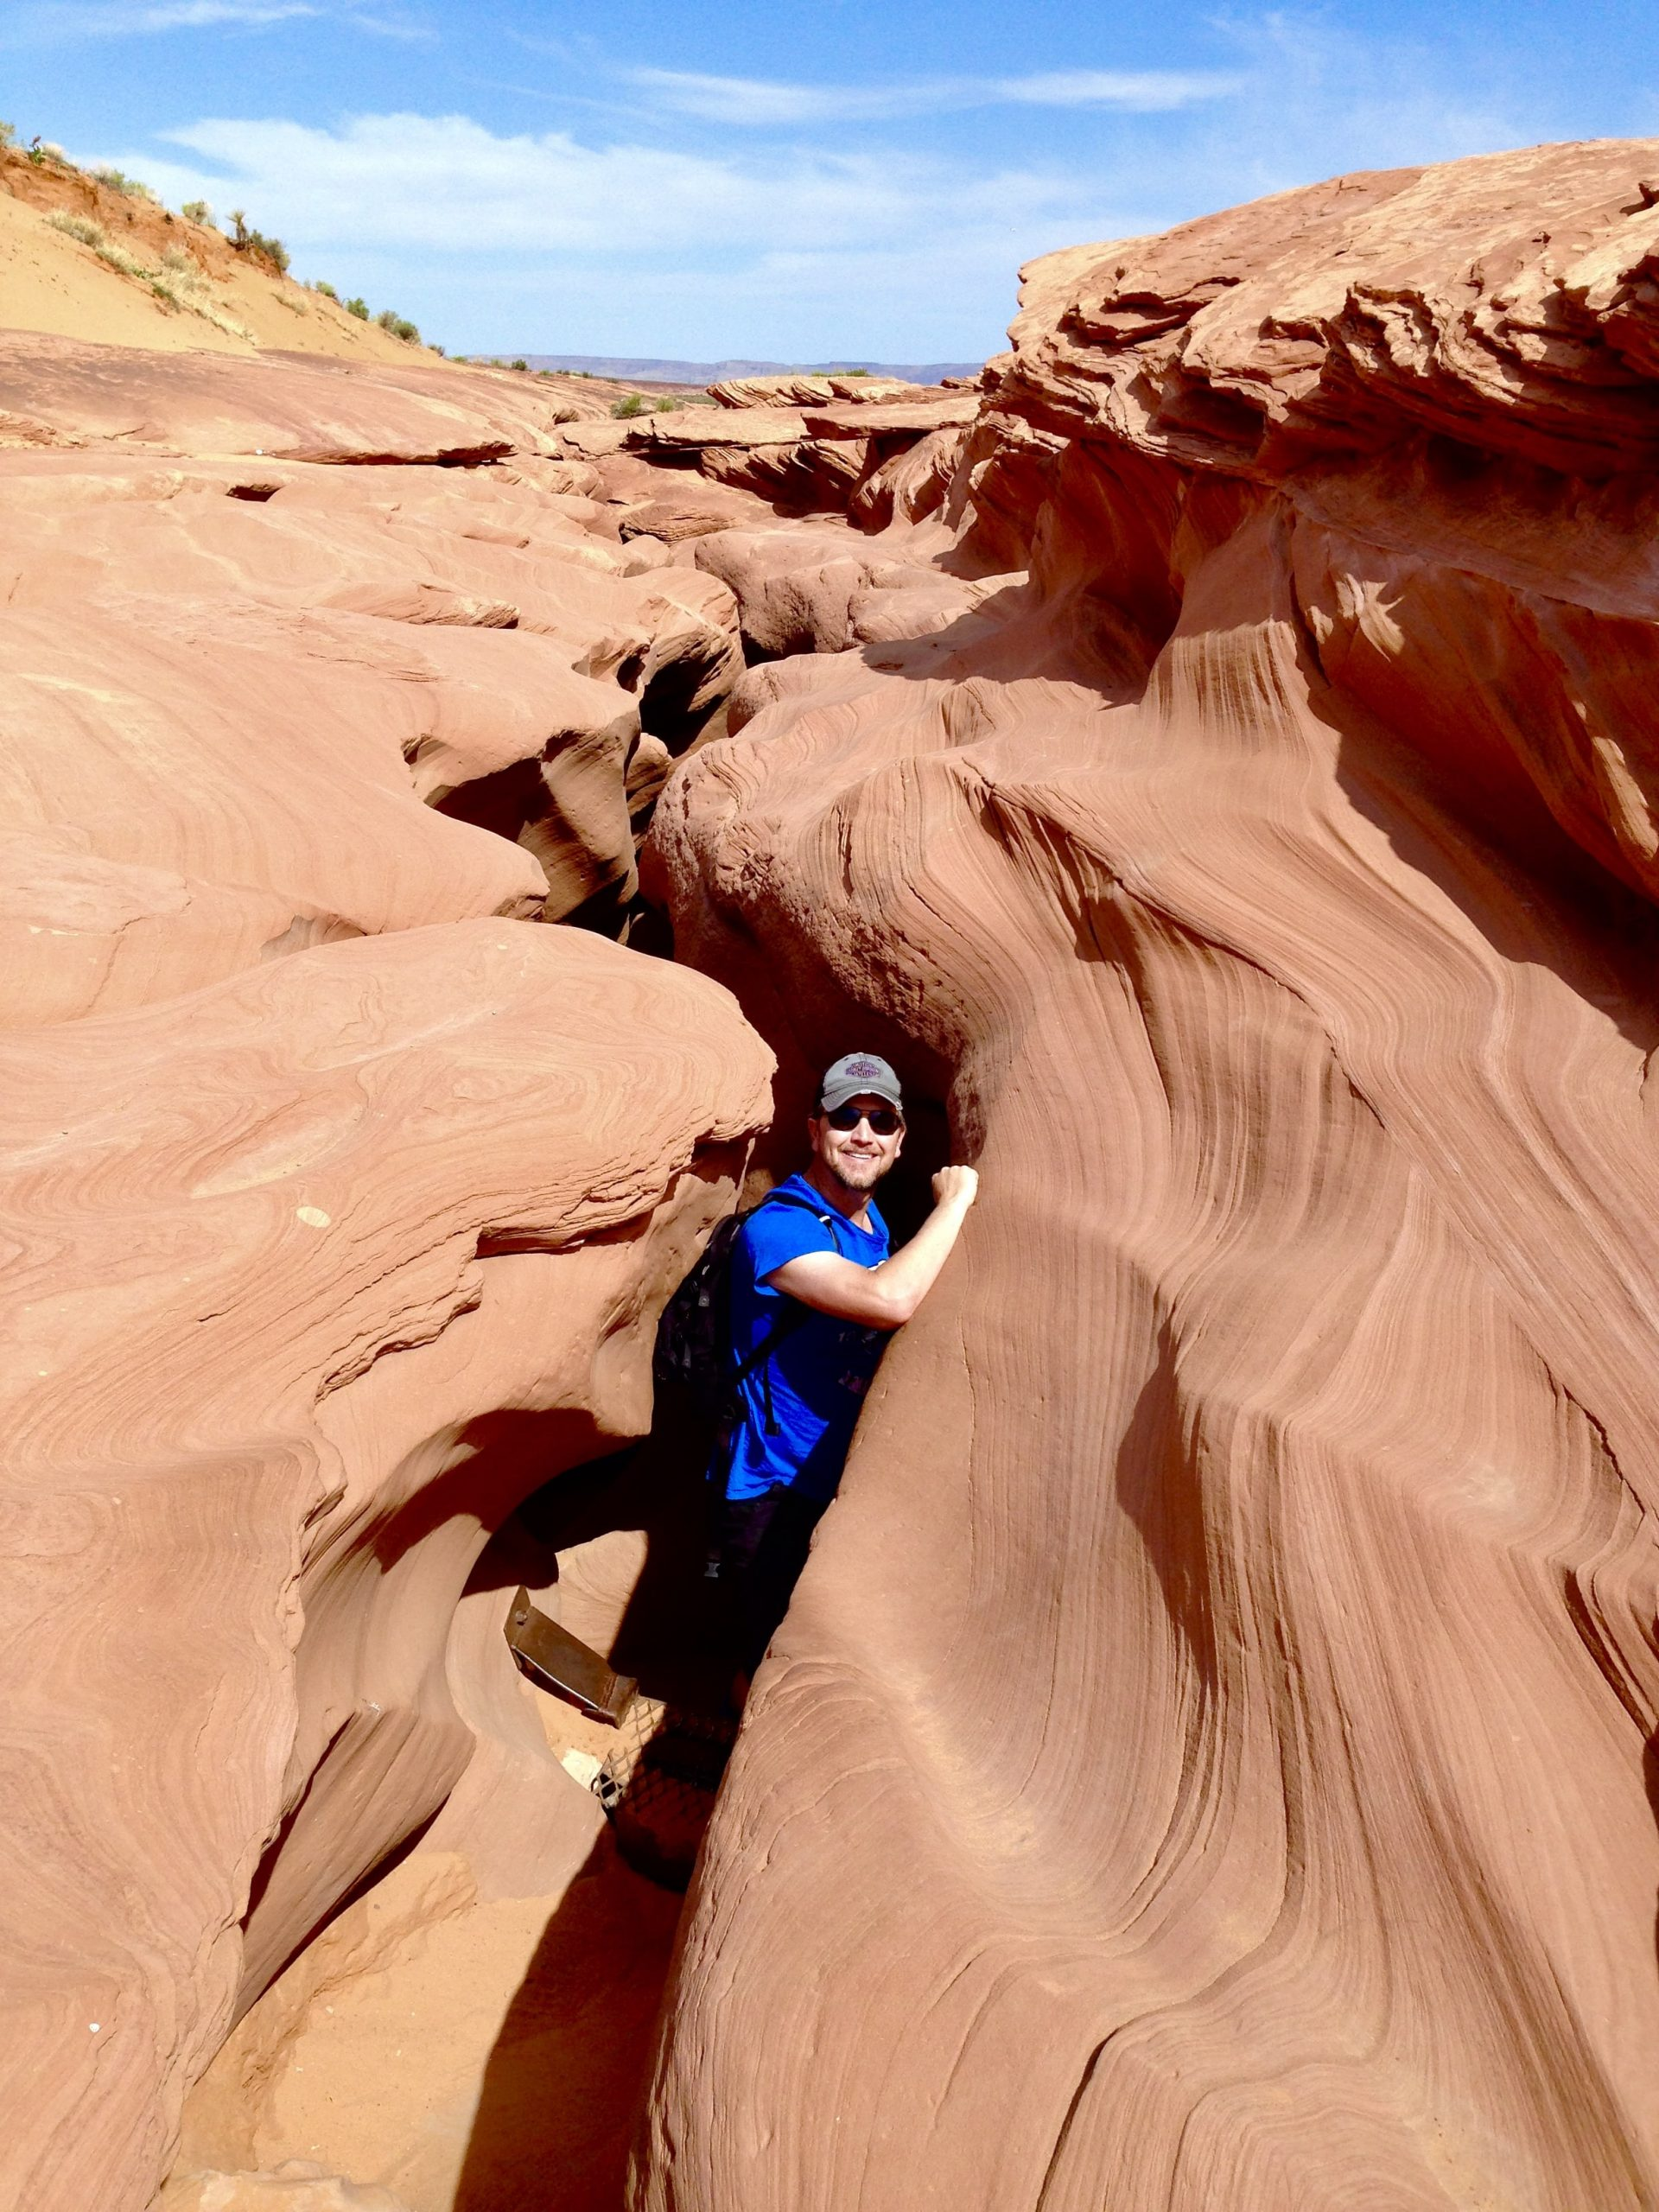 Emerging from Lower Antelope Canyon